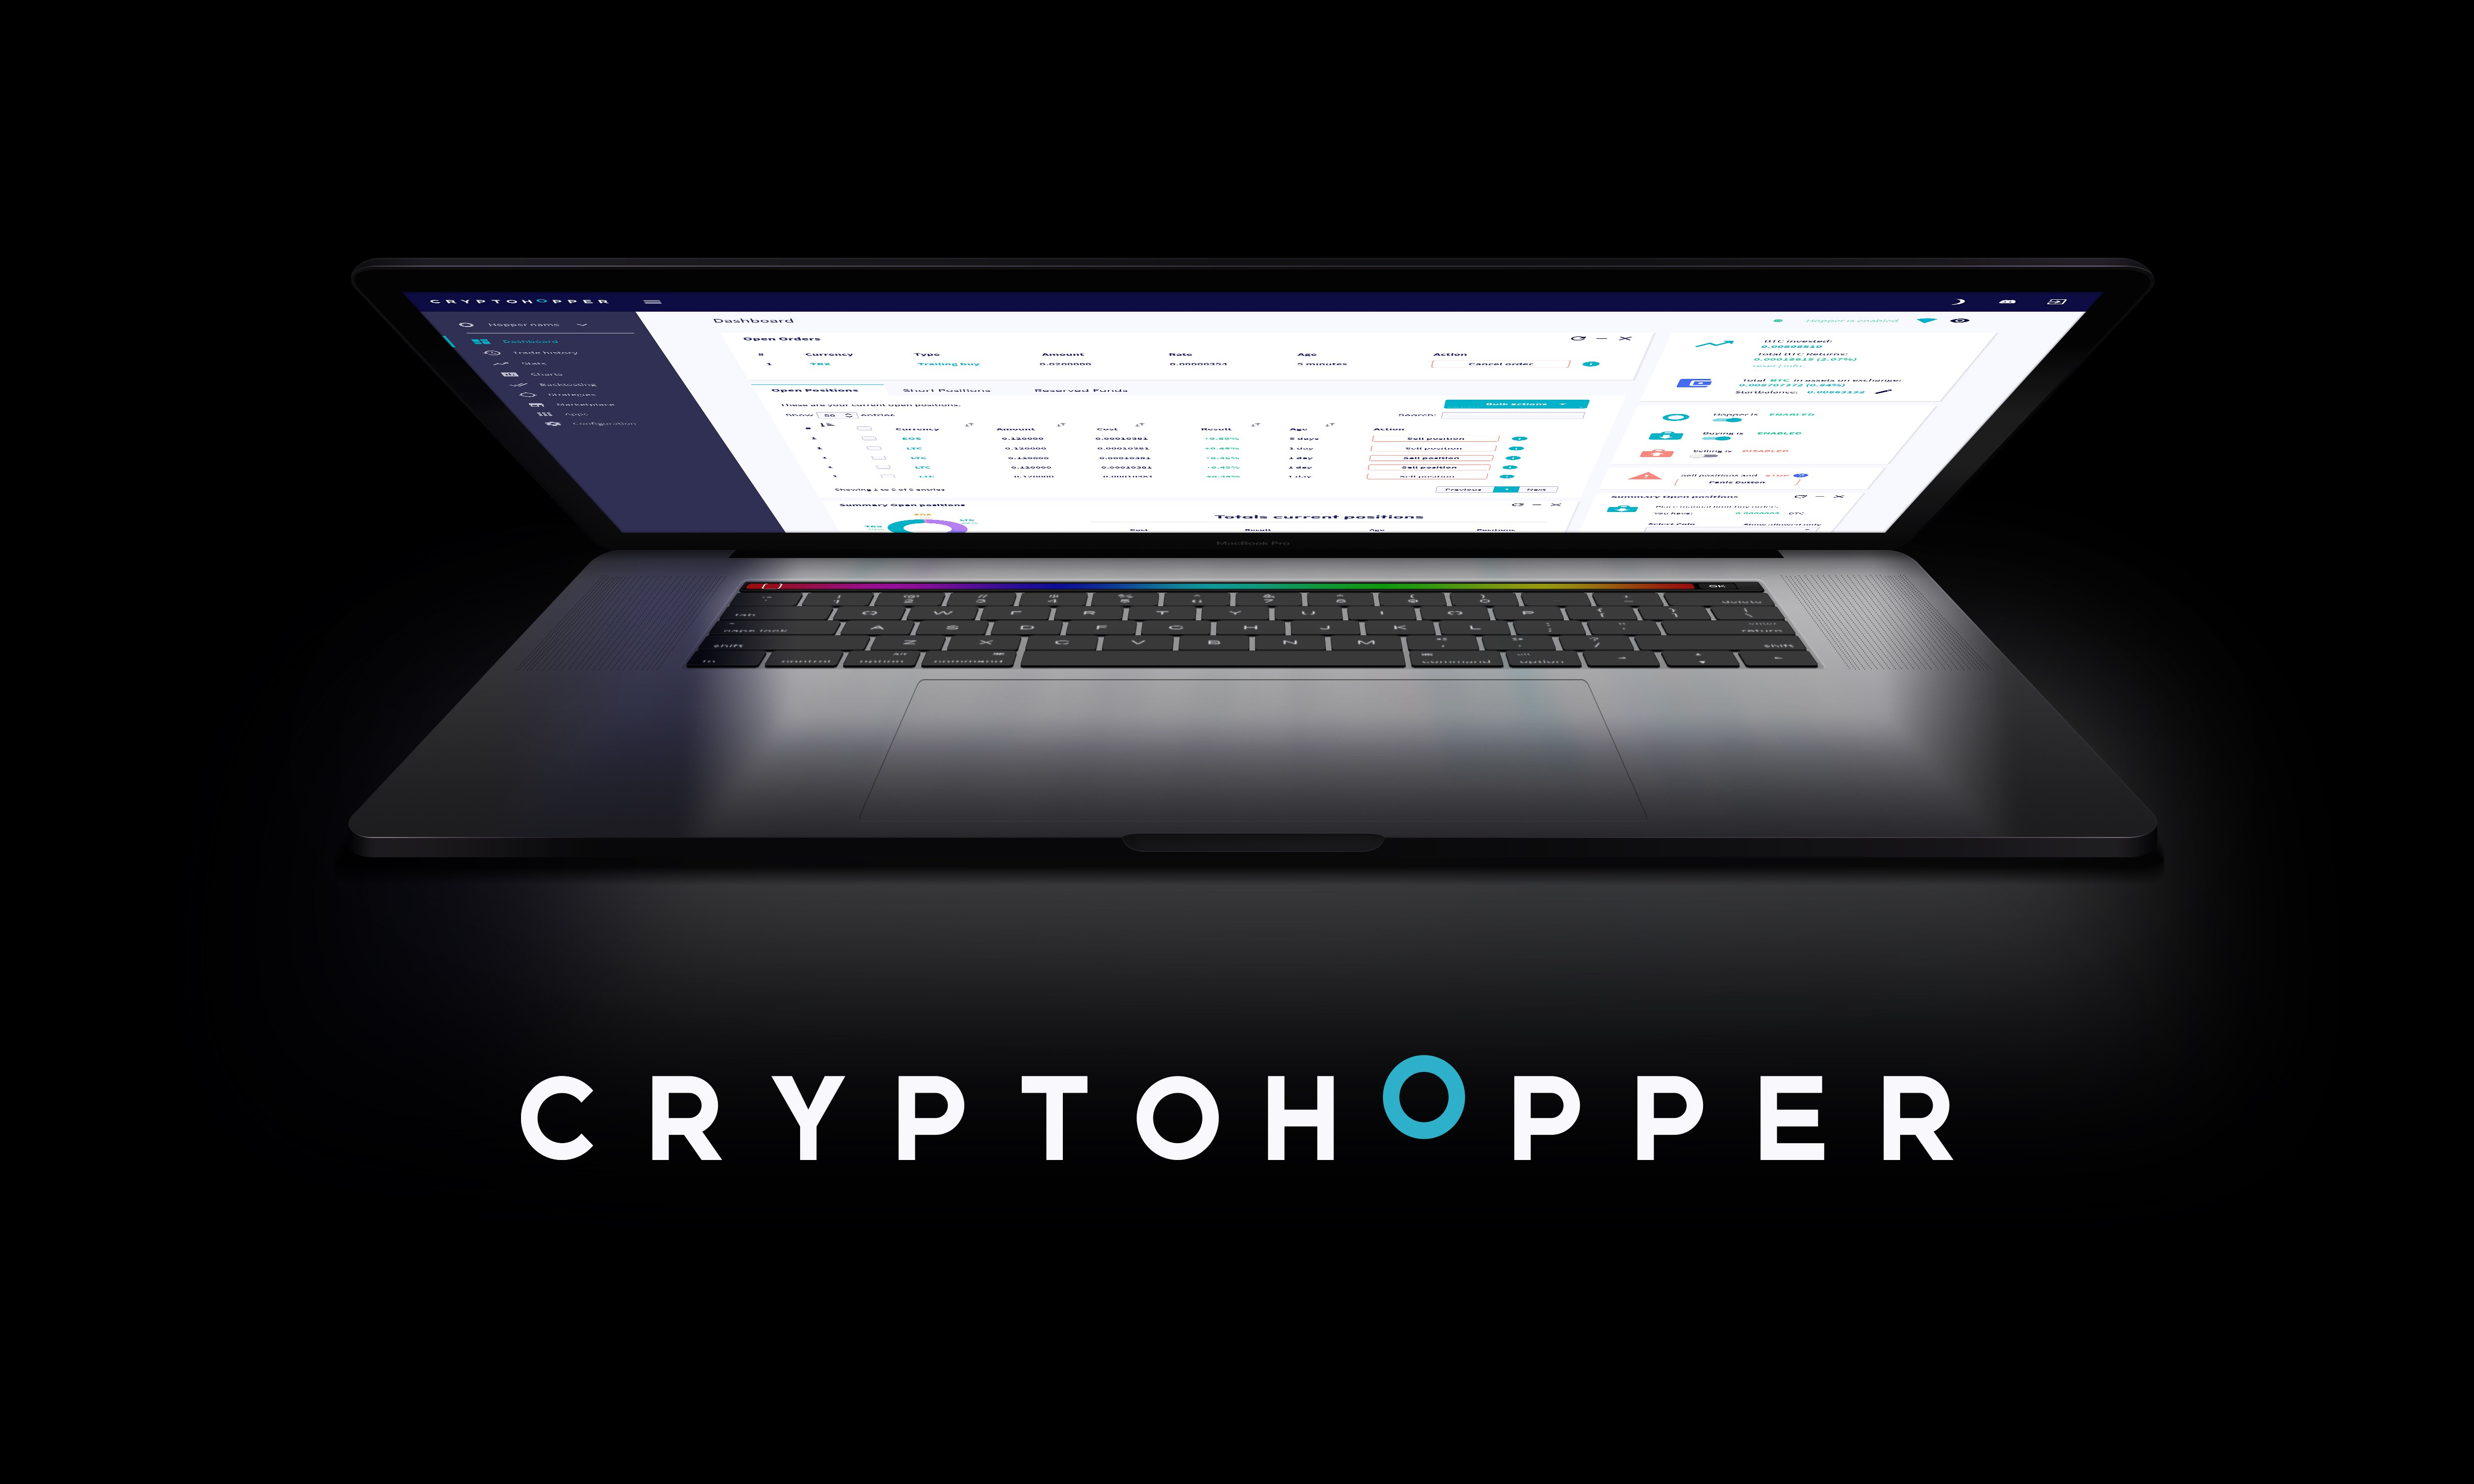 Dutch startup Cryptohopper enables crypto traders to buy, sell trading strategies